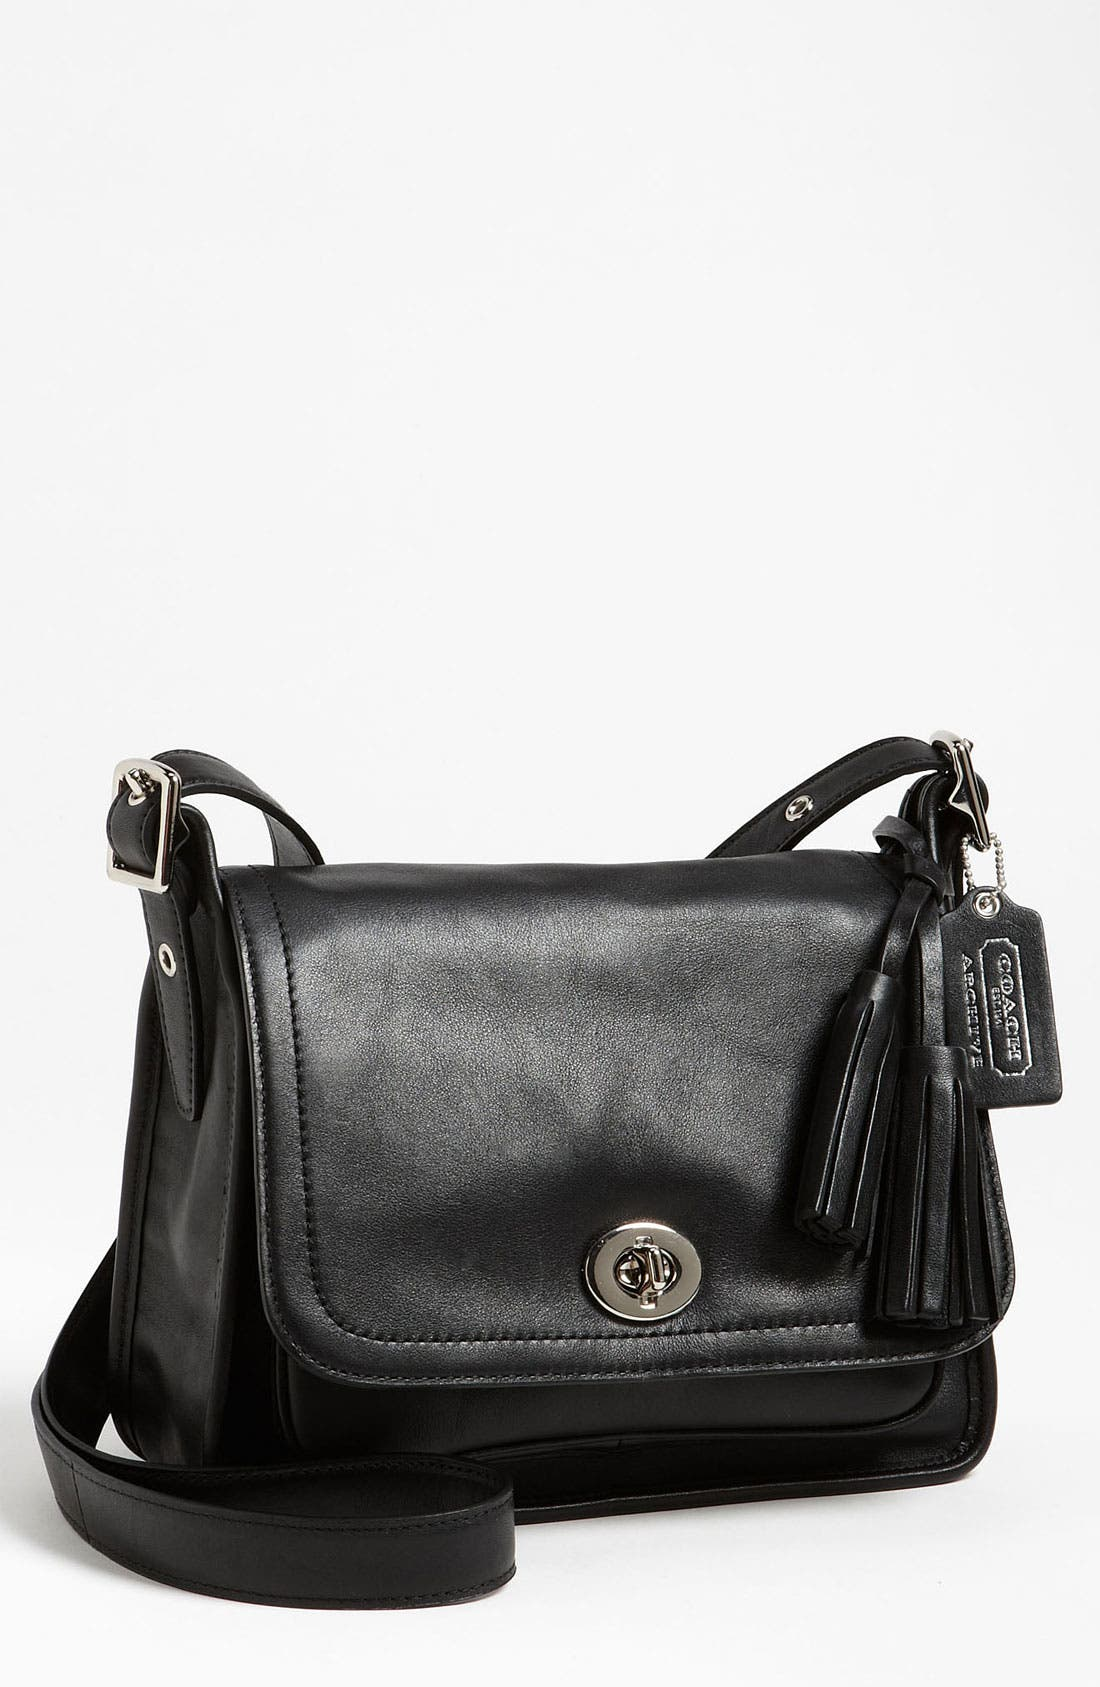 Alternate Image 1 Selected - COACH 'Legacy Archival - Rambler' Crossbody Bag